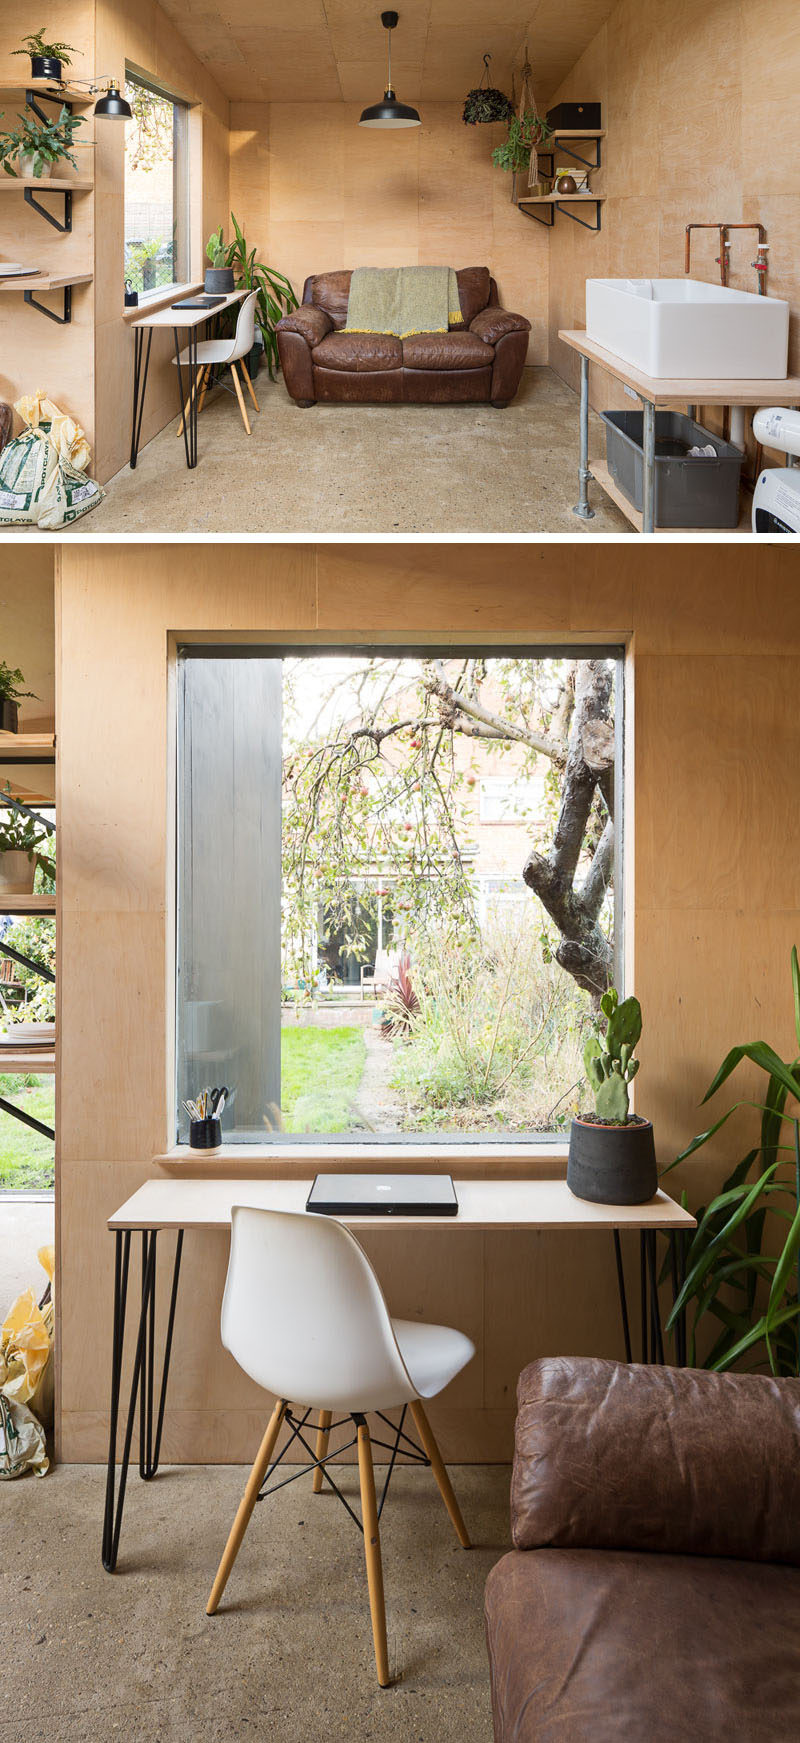 This modern backyard pottery shed also double as a office, with a comfortable couch for relaxing and a narrow desk in front of the window for working. #PotteryShed #BackyardStudio #HomeOffice